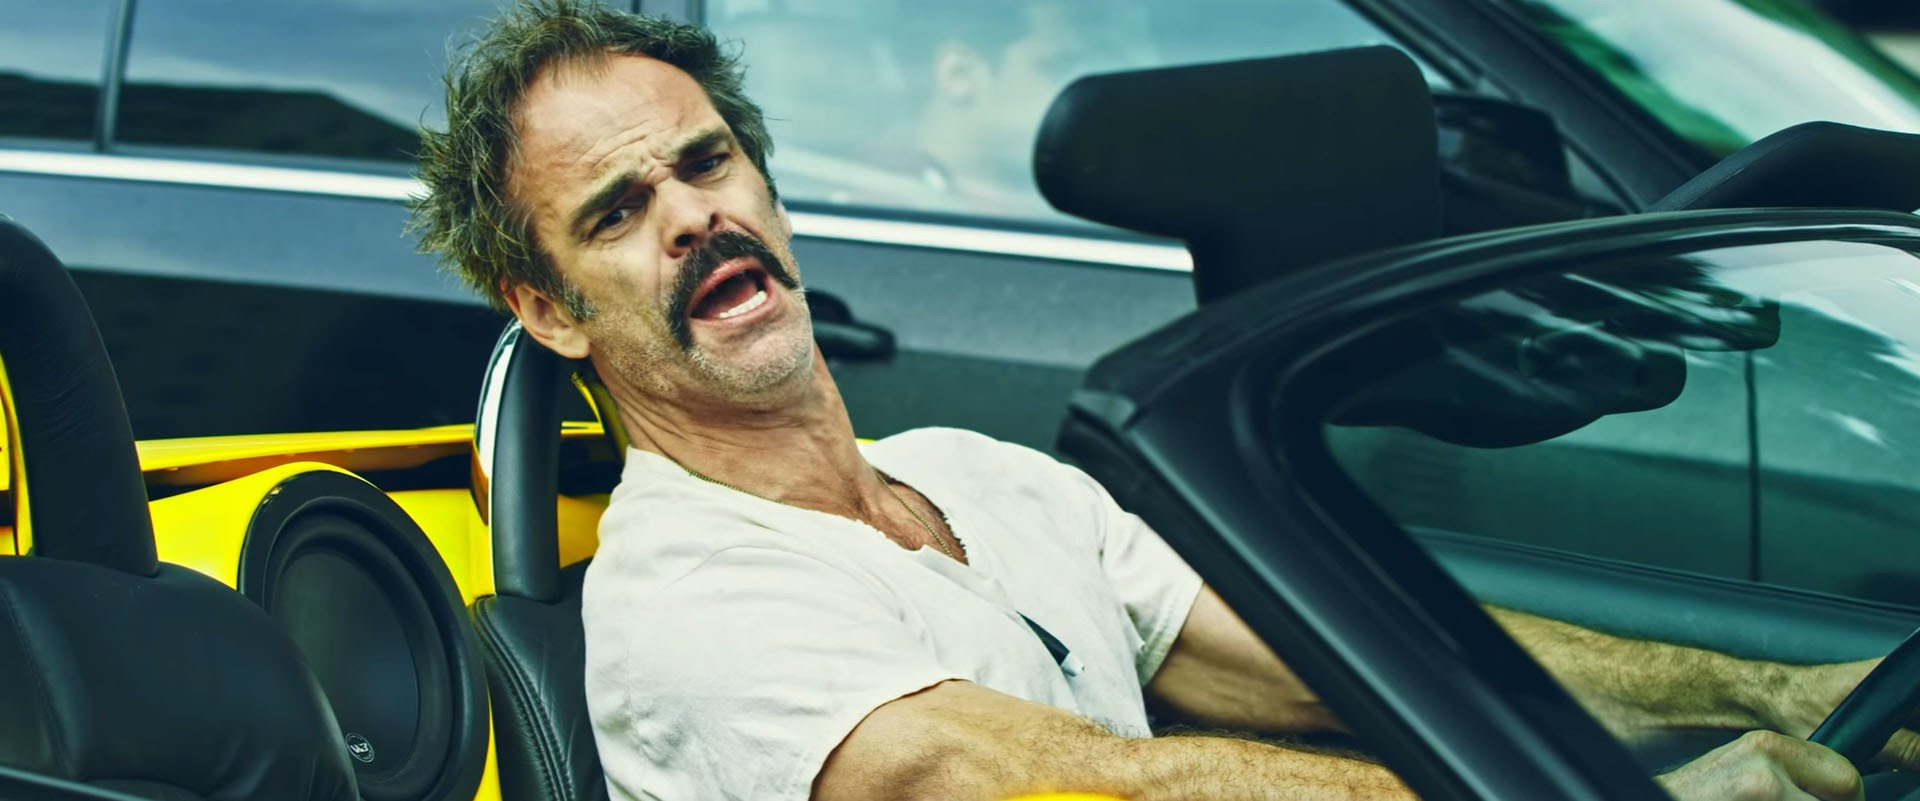 Real Life Gta V Featuring Real Life Trevor Philips Is A Great Short Movie Autoevolution